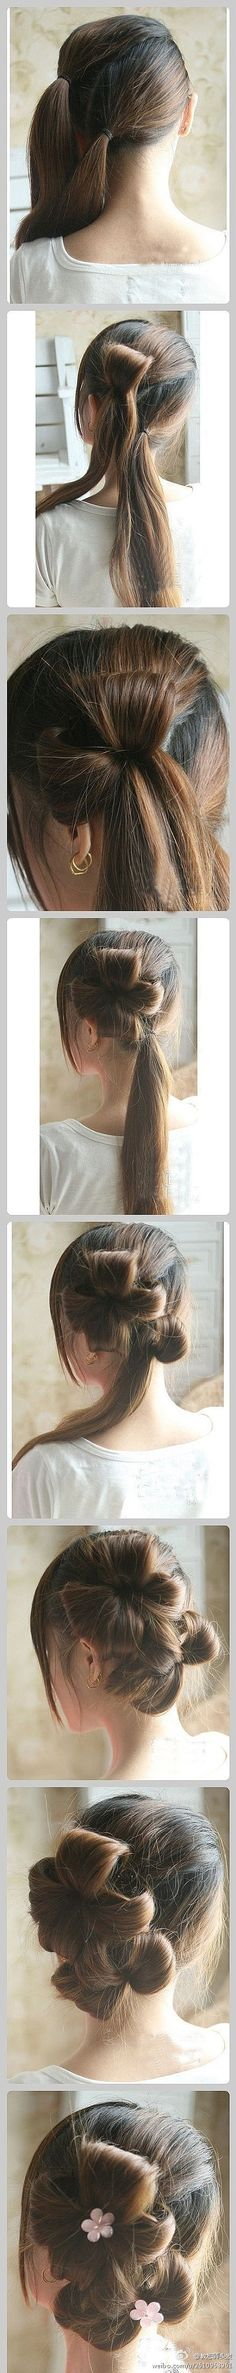 DIY hair updo